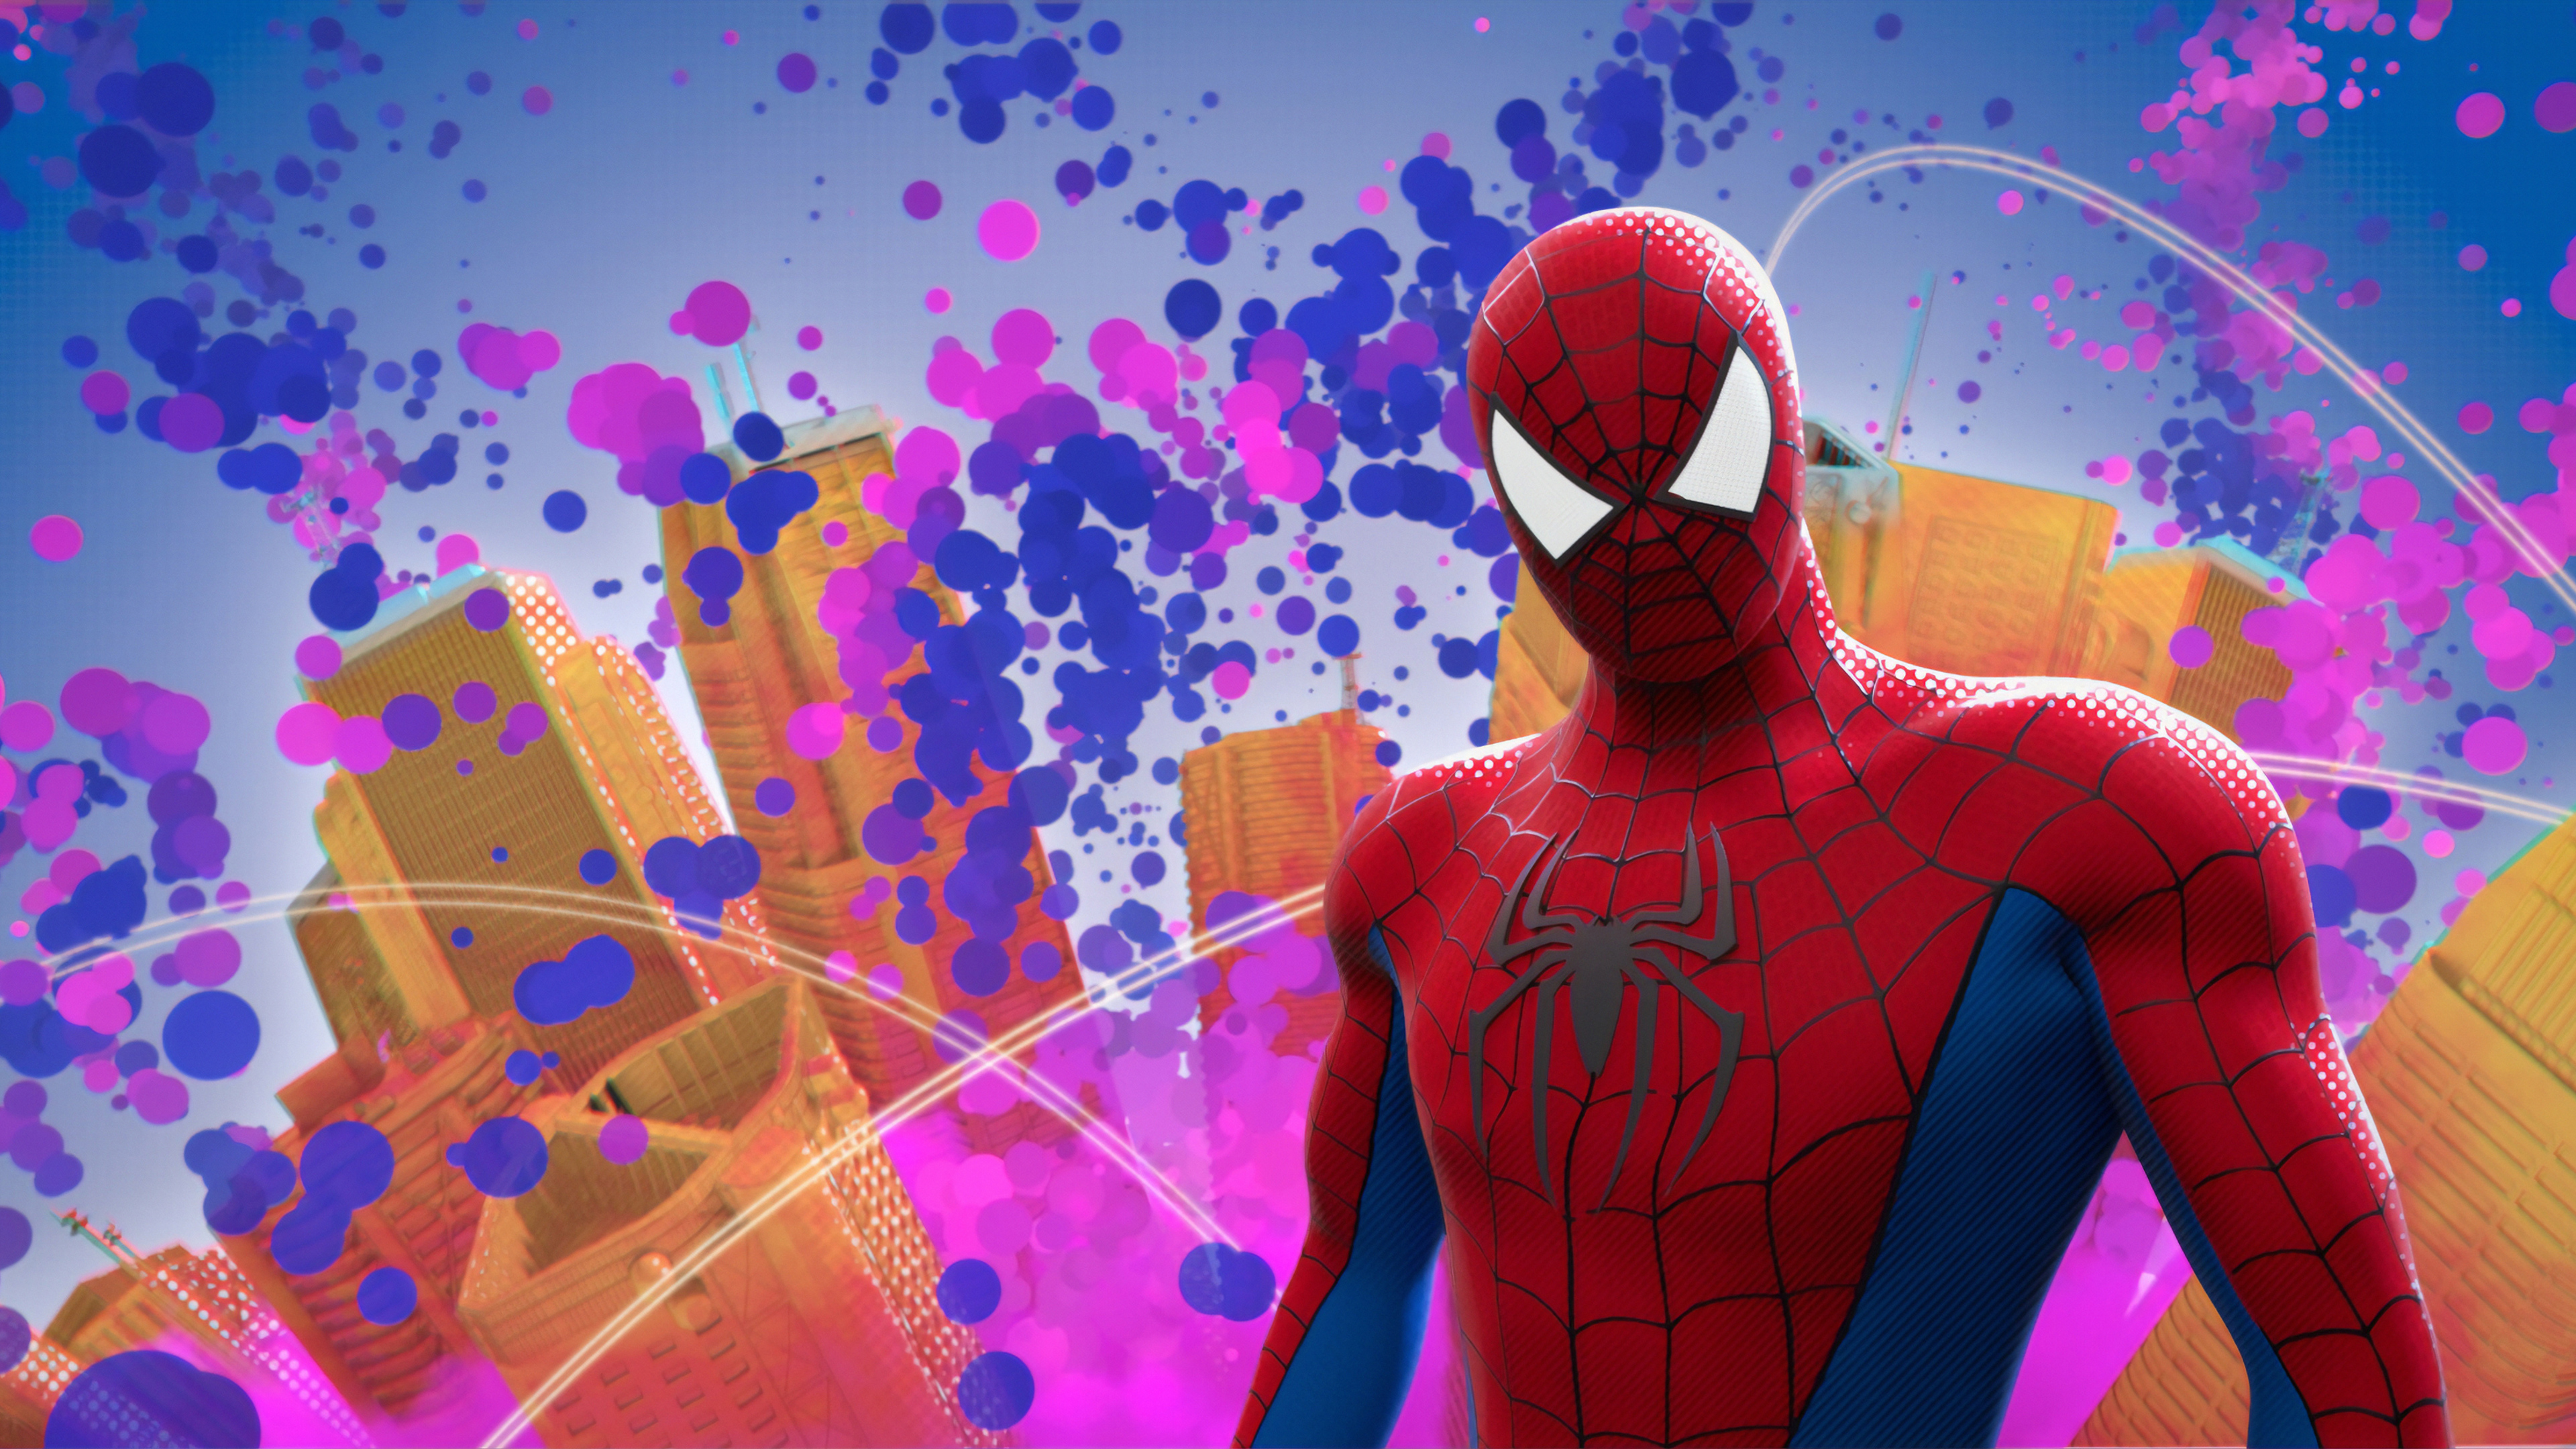 spiderman background colorful 1570394437 - Spiderman Background Colorful - superheroes wallpapers, spiderman wallpapers, hd-wallpapers, digital art wallpapers, artwork wallpapers